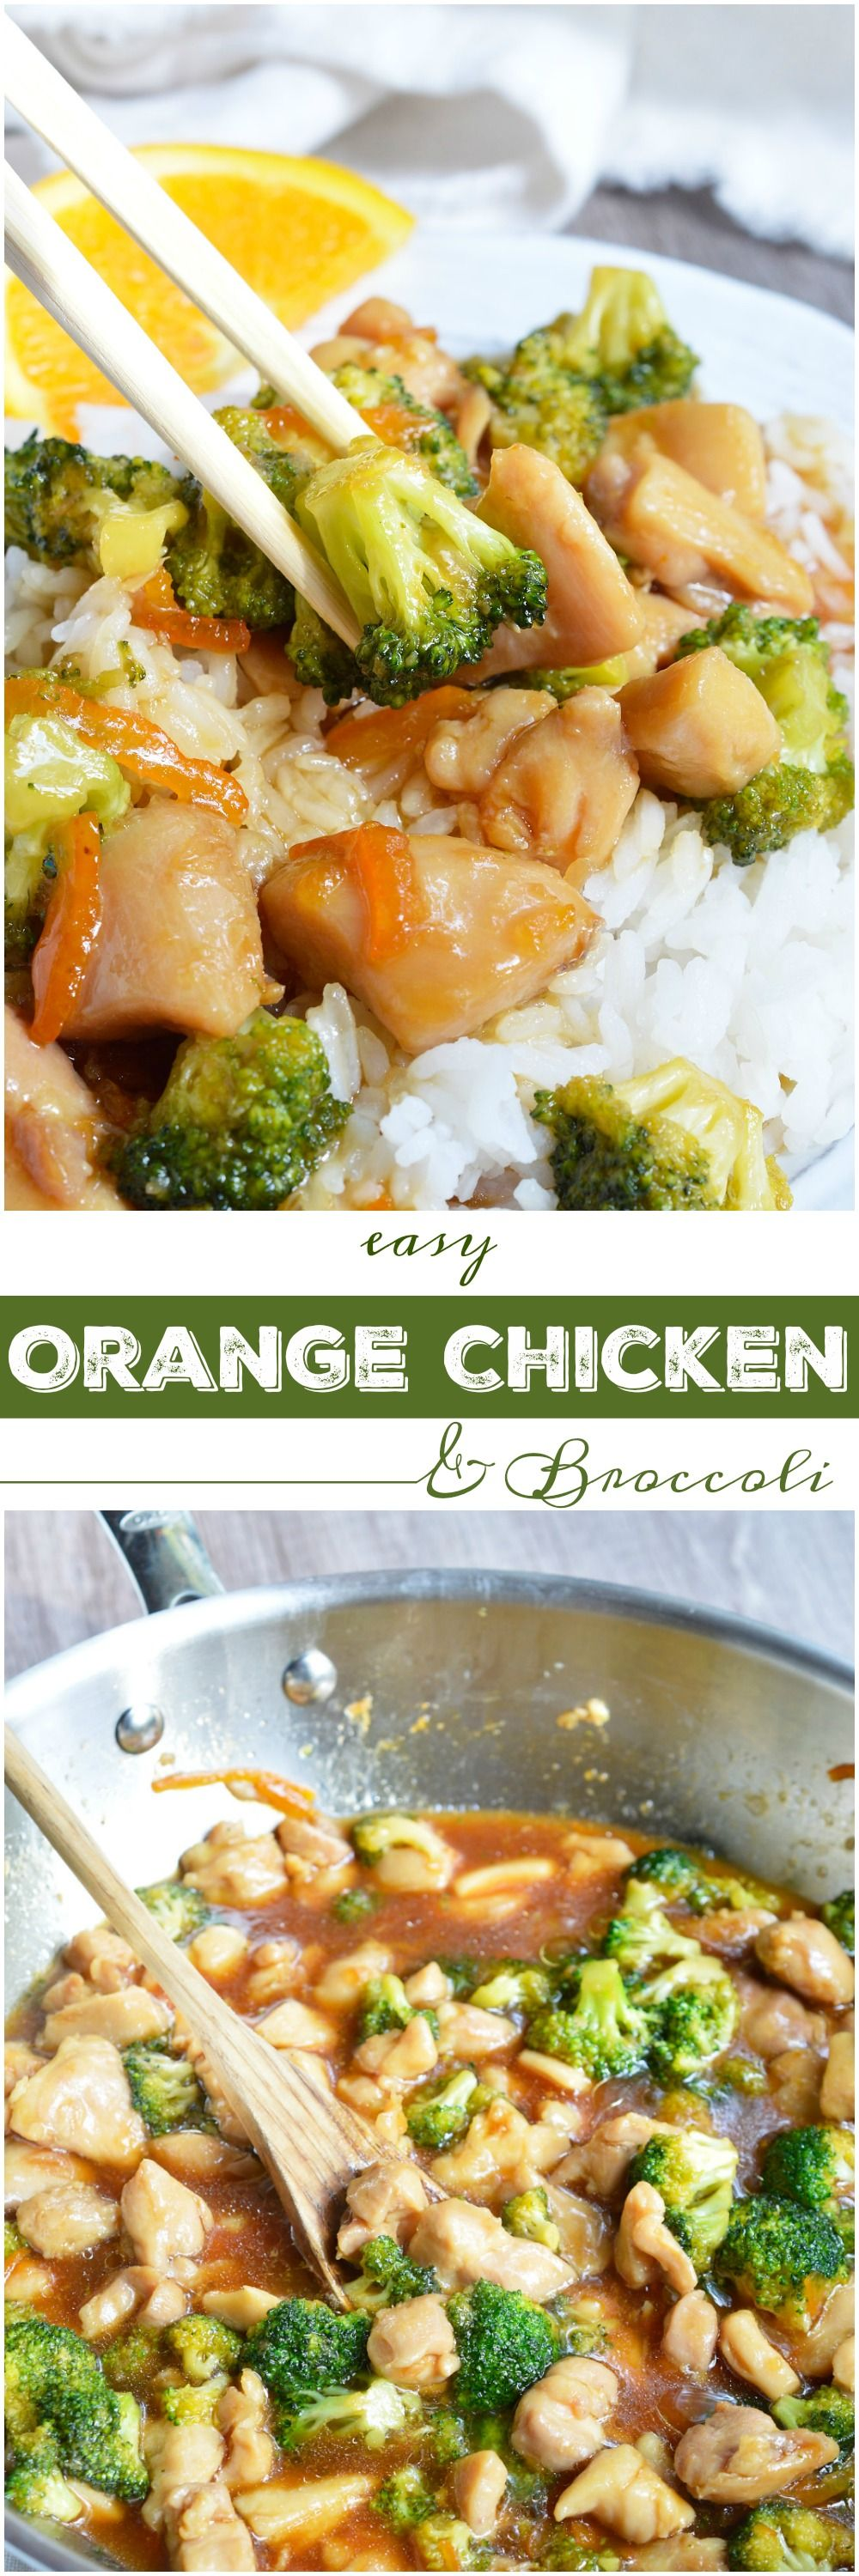 If you're craving Chinese take out this Orange Soy Chicken Broccoli is the dinner recipe you need! With six ingredients and about 20 minutes you can have a delicious Asian inspired meal. #ad #BeAKitchenHero